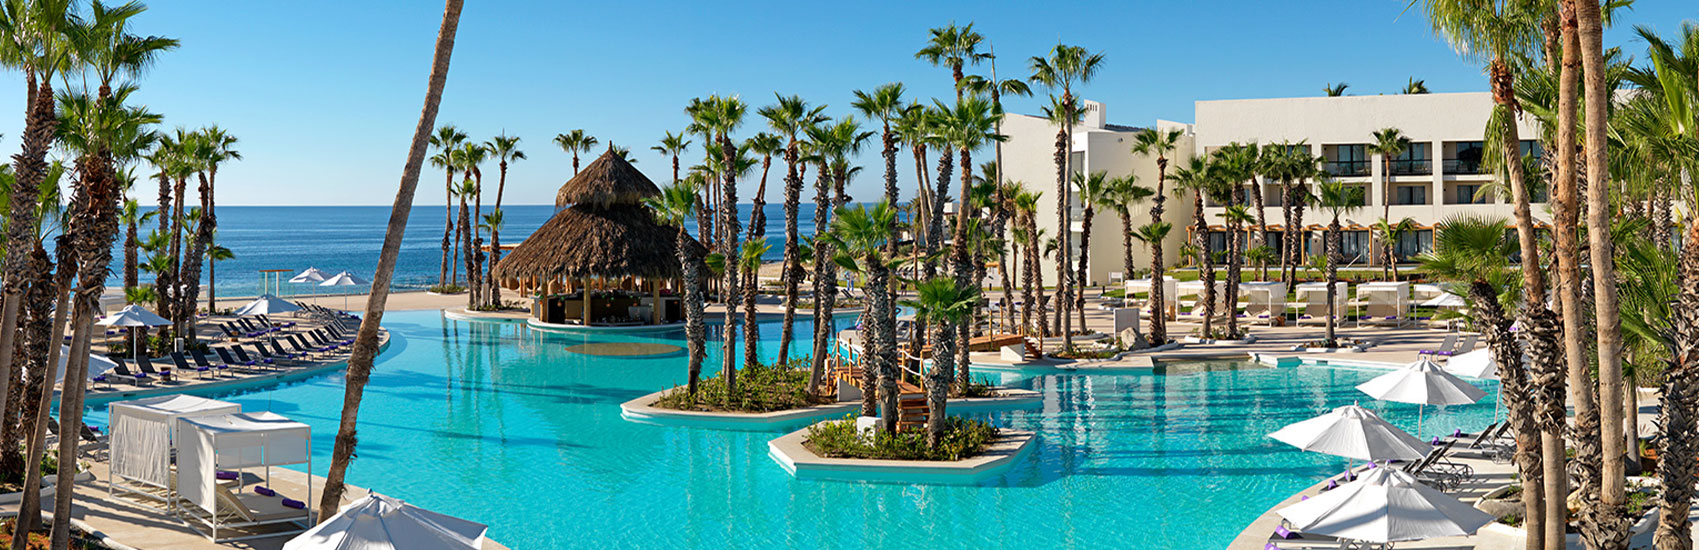 Las Vegas and Mexico with WestJet Vacations 2